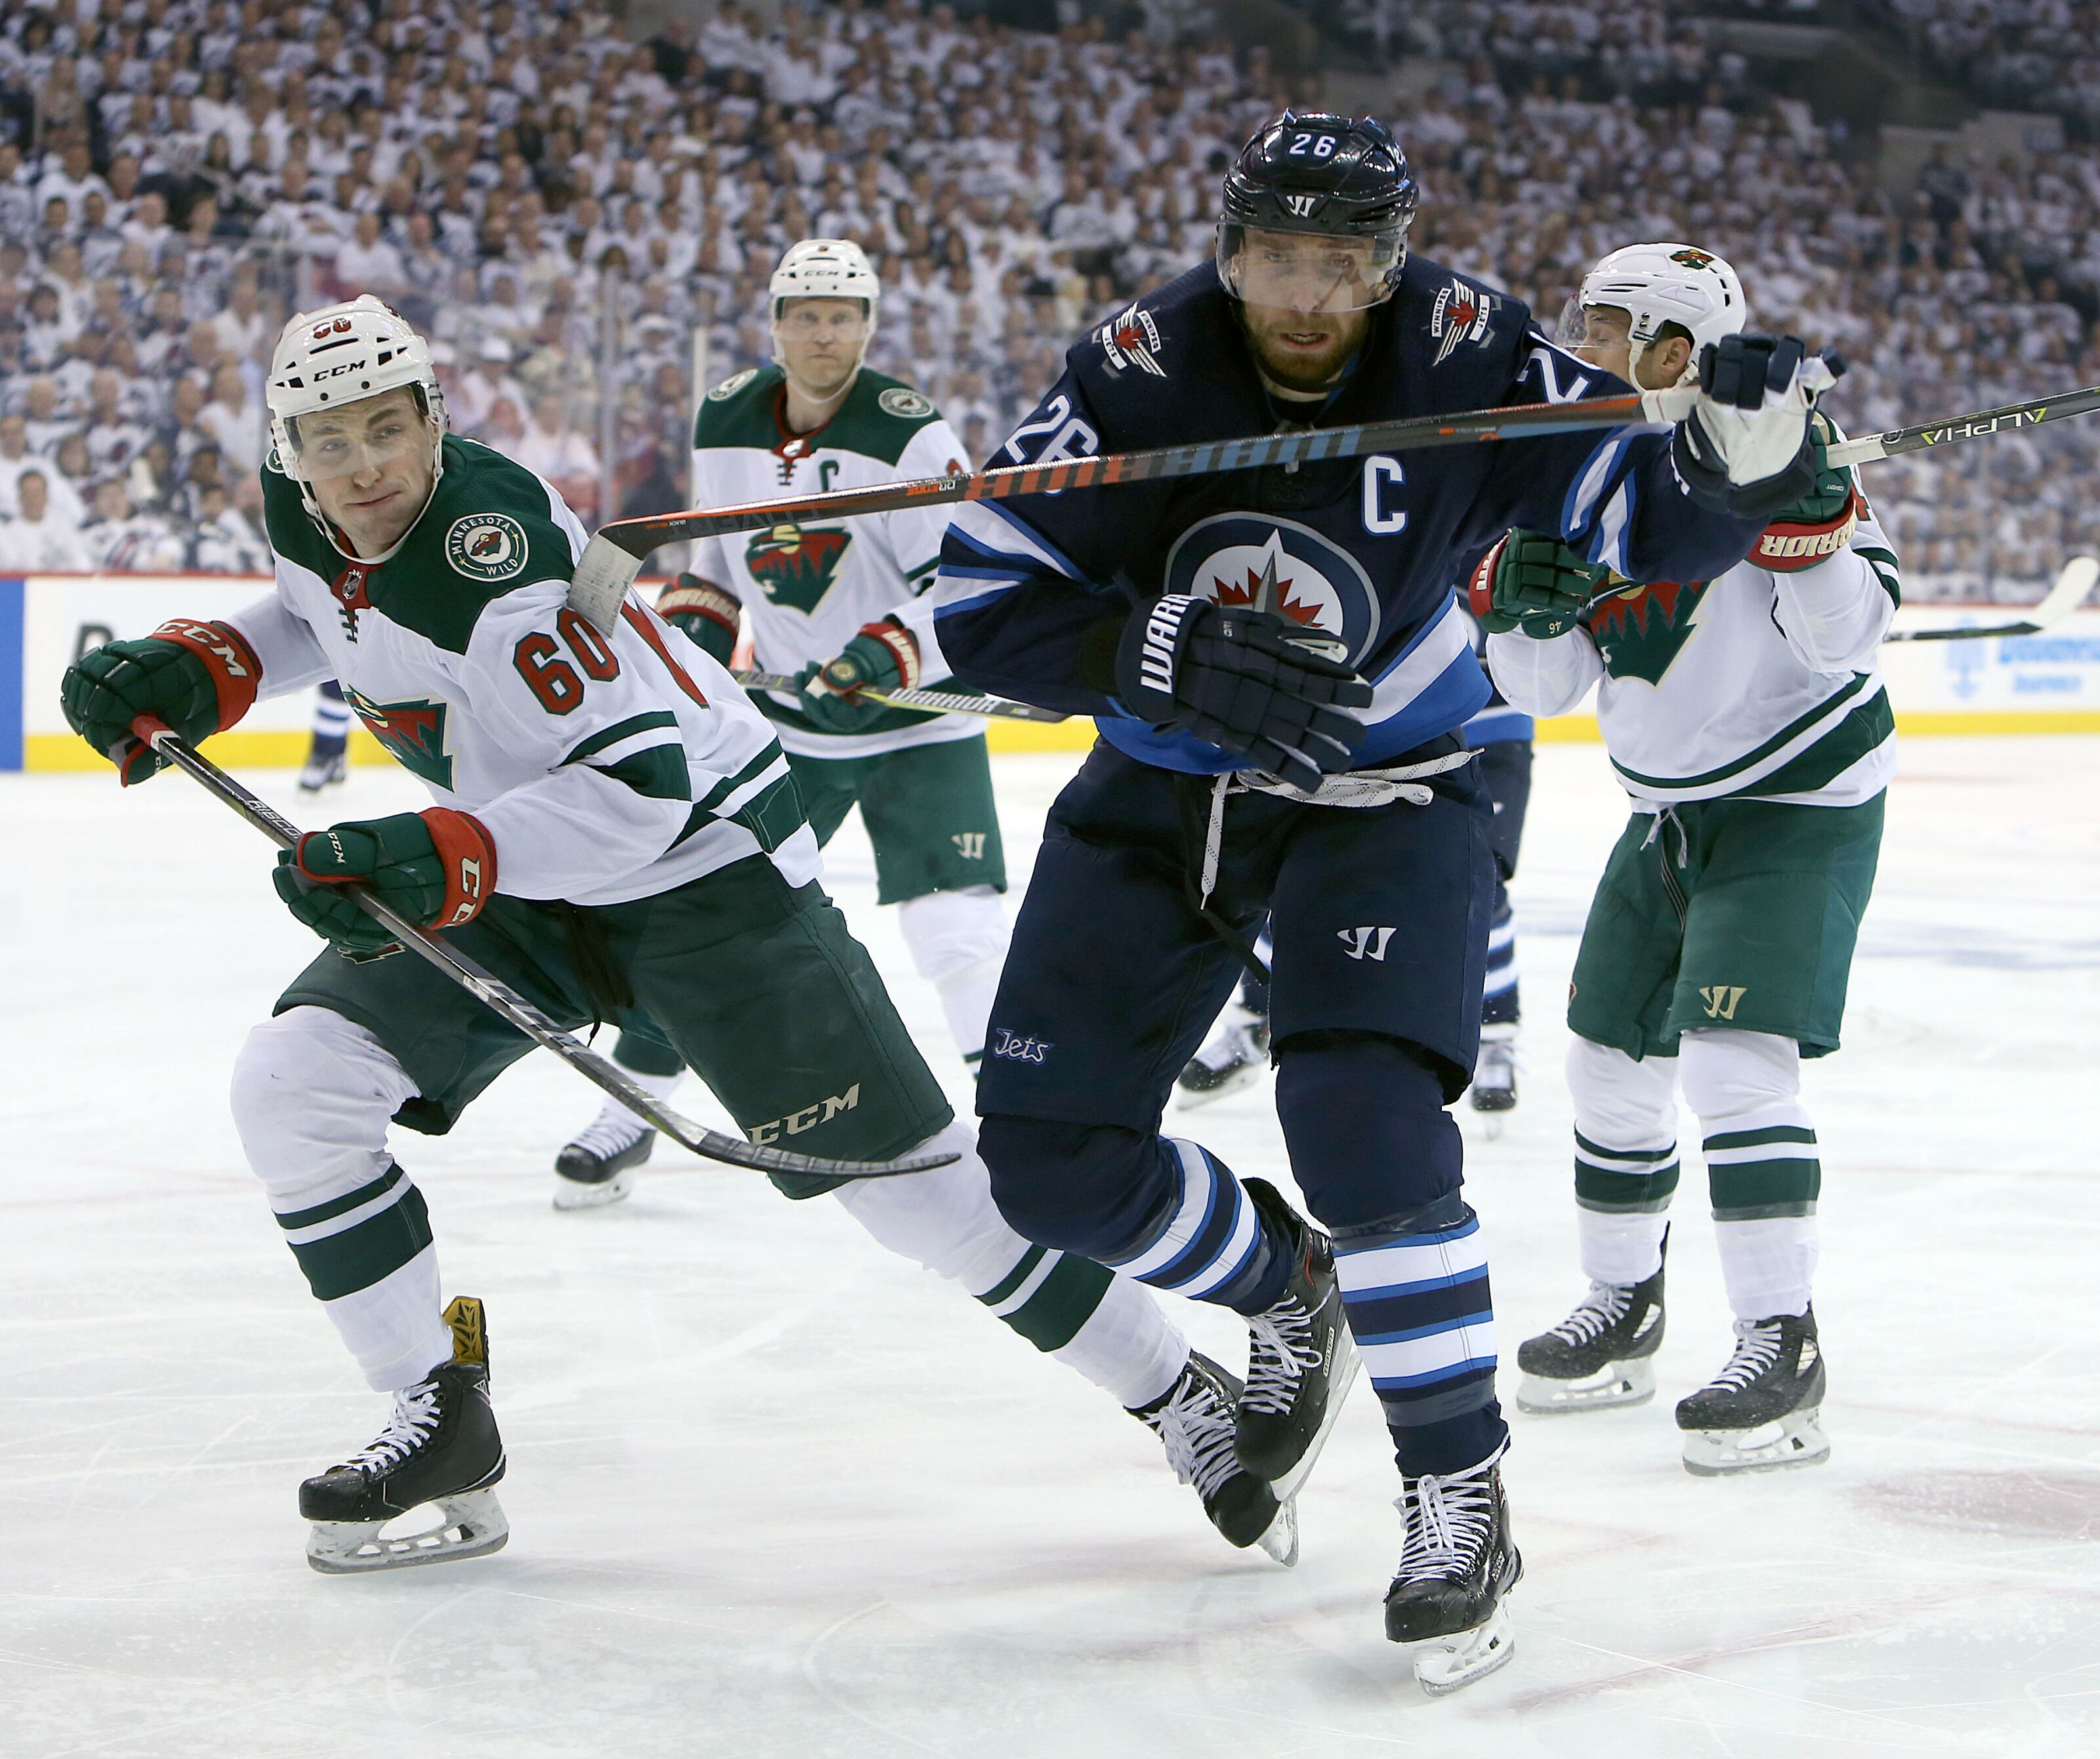 Jets Vs. Wild Game 1: Full Highlights, Final Score And More